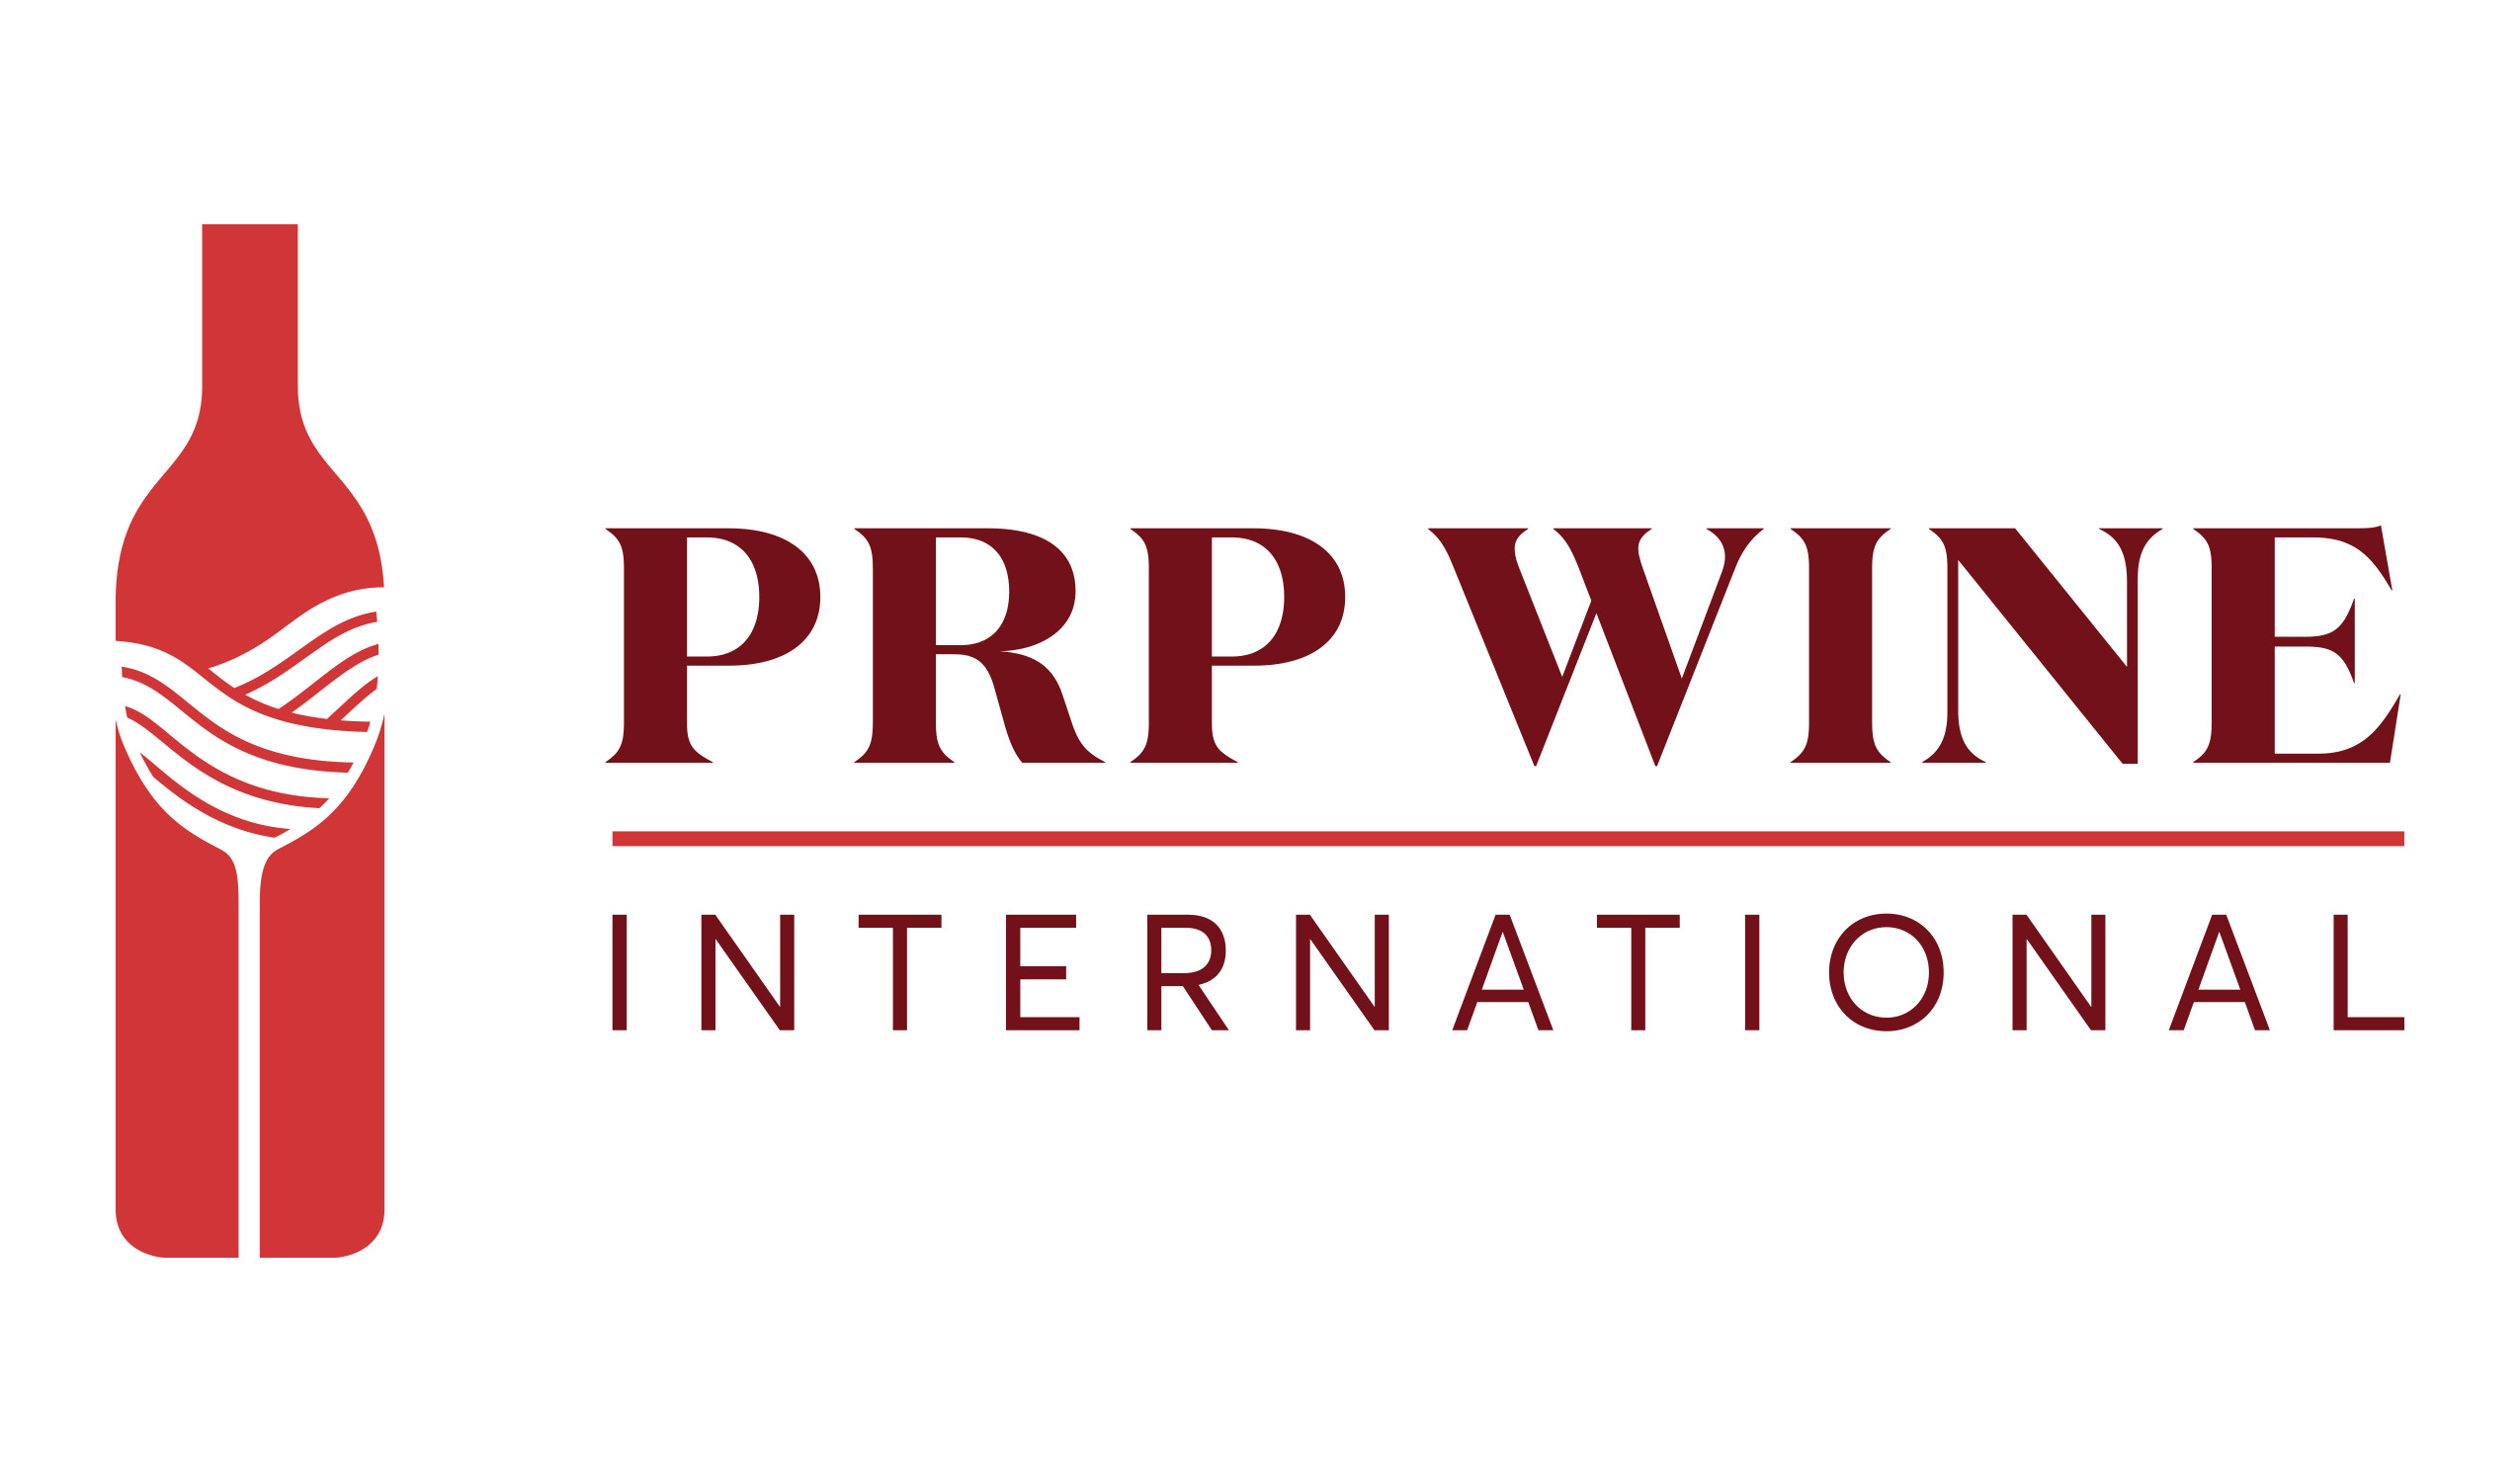 international wine marketing plan Discover great wines since inception, direct cellars has become one of the premier wine clubs in the world our innovative compensation plan is designed for both network marketing beginners - and veterans learn more get wine earn commissions.